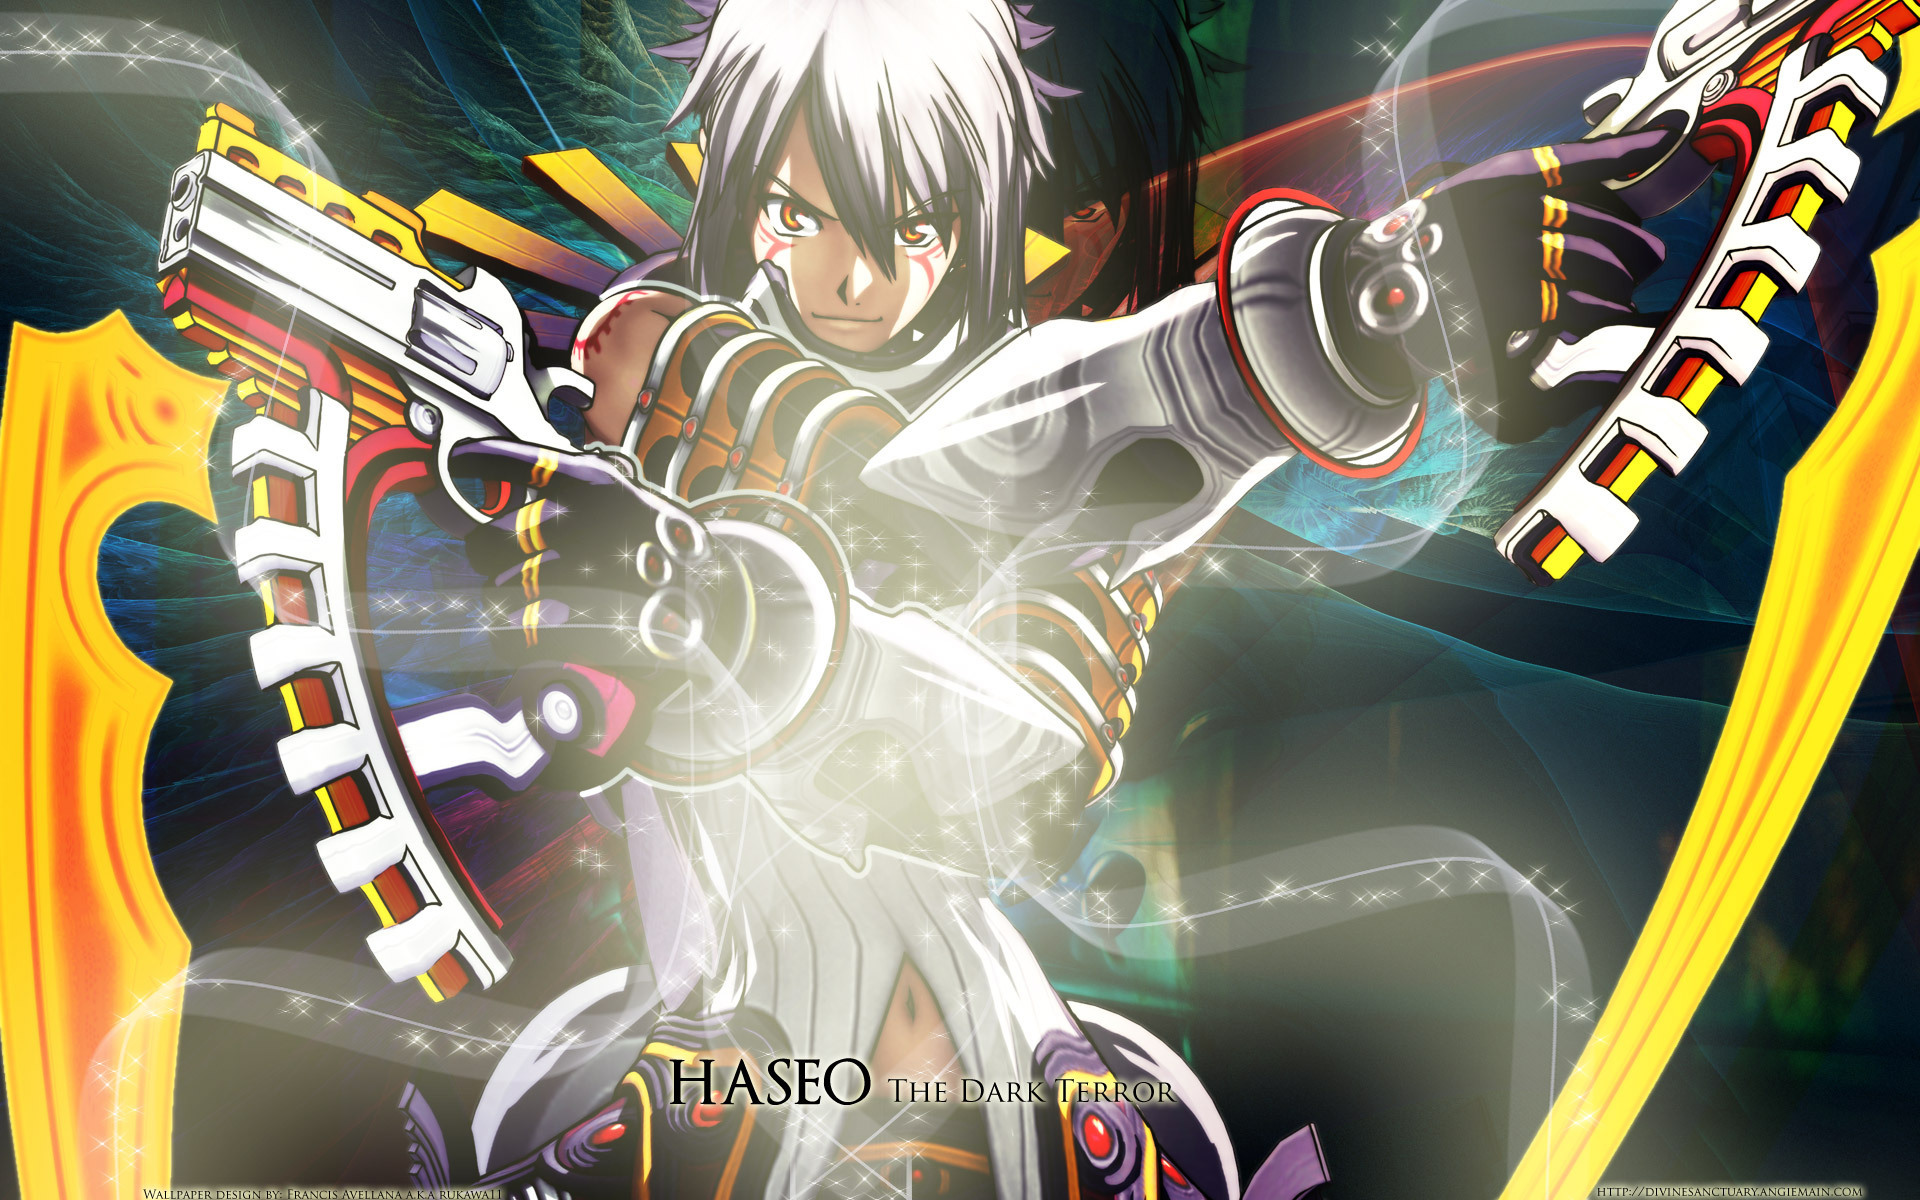 Best 60 Haseo Wallpaper on HipWallpaper Haseo Wallpaper Haseo 1920x1200